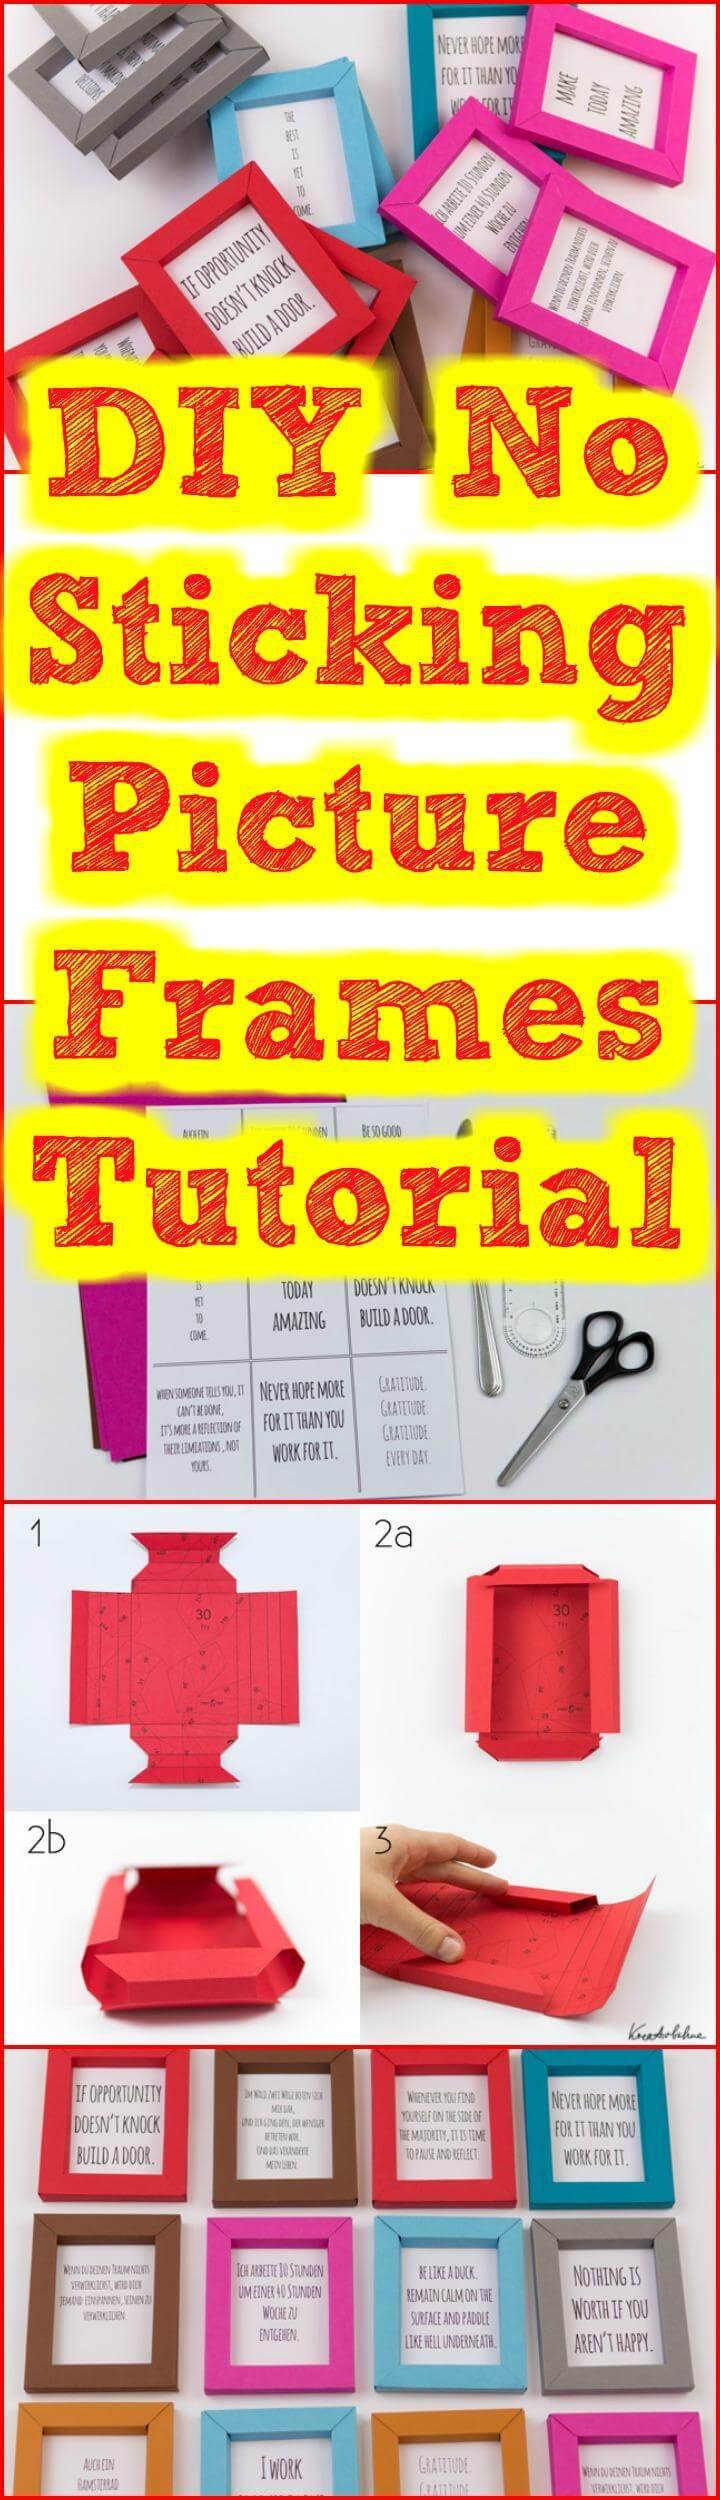 easy no-sticking picture frame tutorial